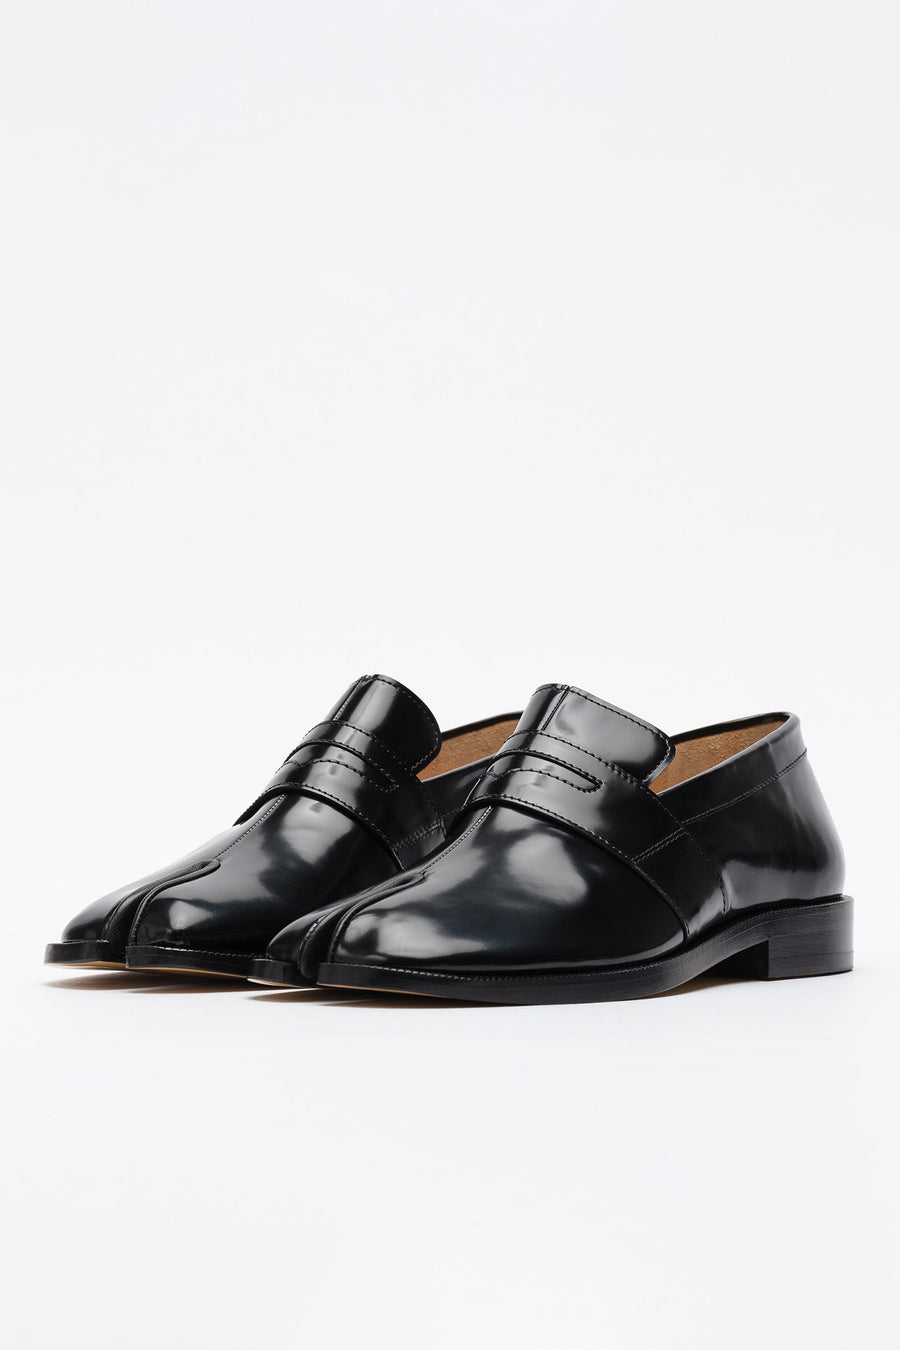 Maison Margiela Tabi Penny Loafer in Black - Notre